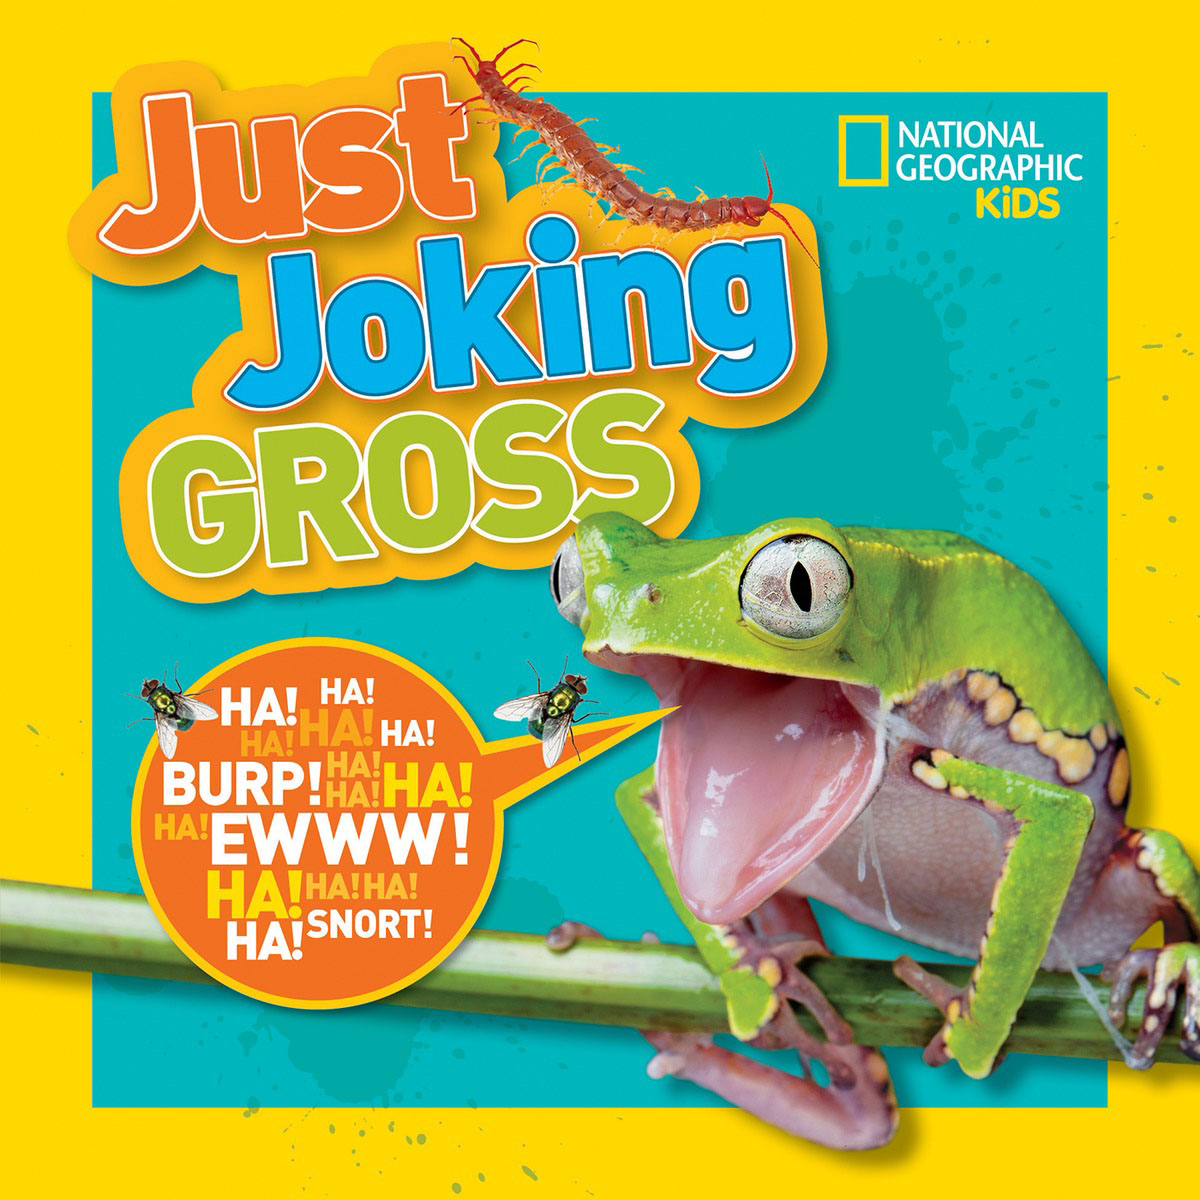 National Geographic Kids Just Joking Gross